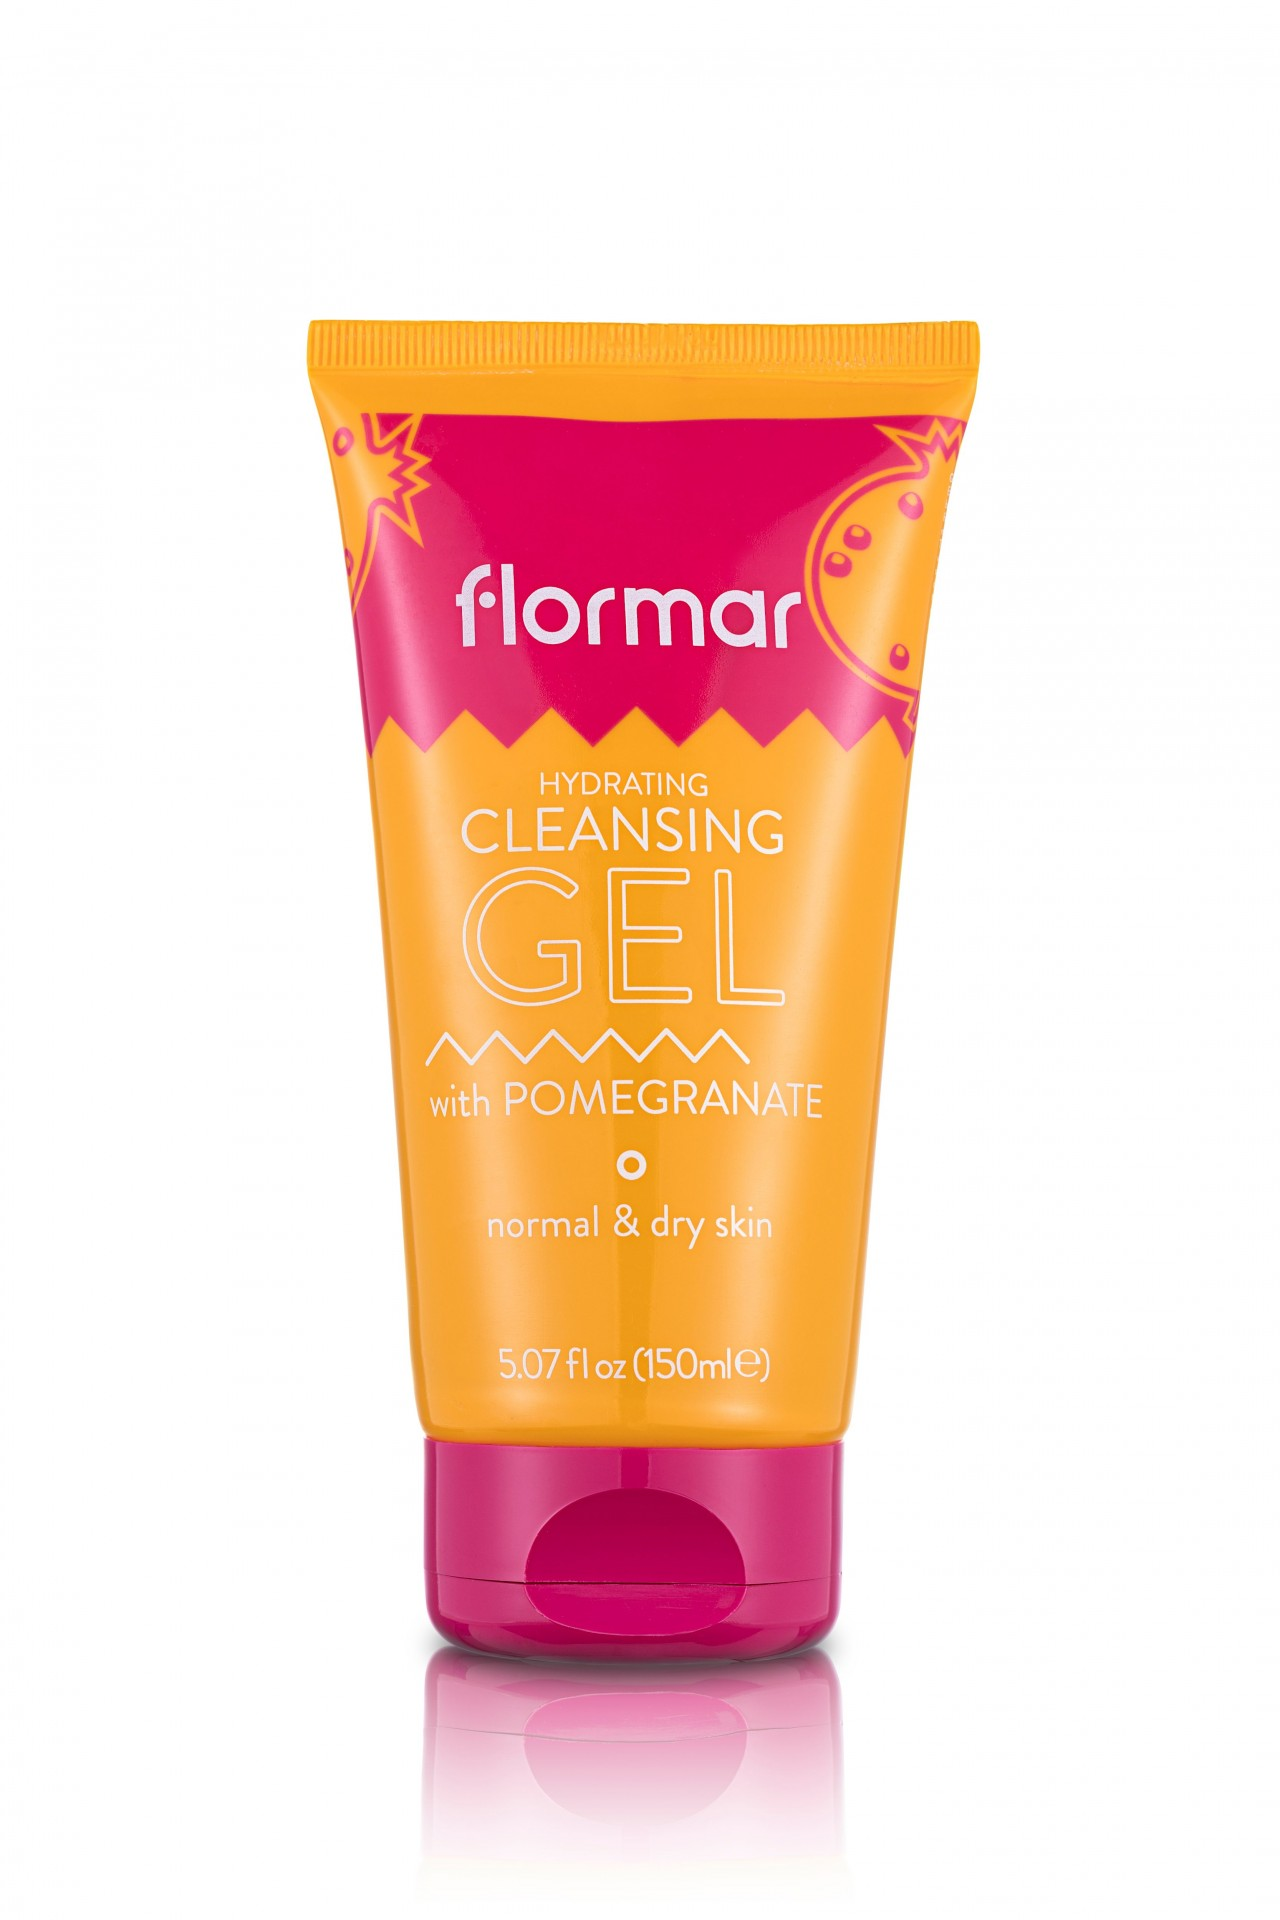 FLORMAR - 3 IN 1 CLEANSING GEL SYSTEM - POMEGRANATE